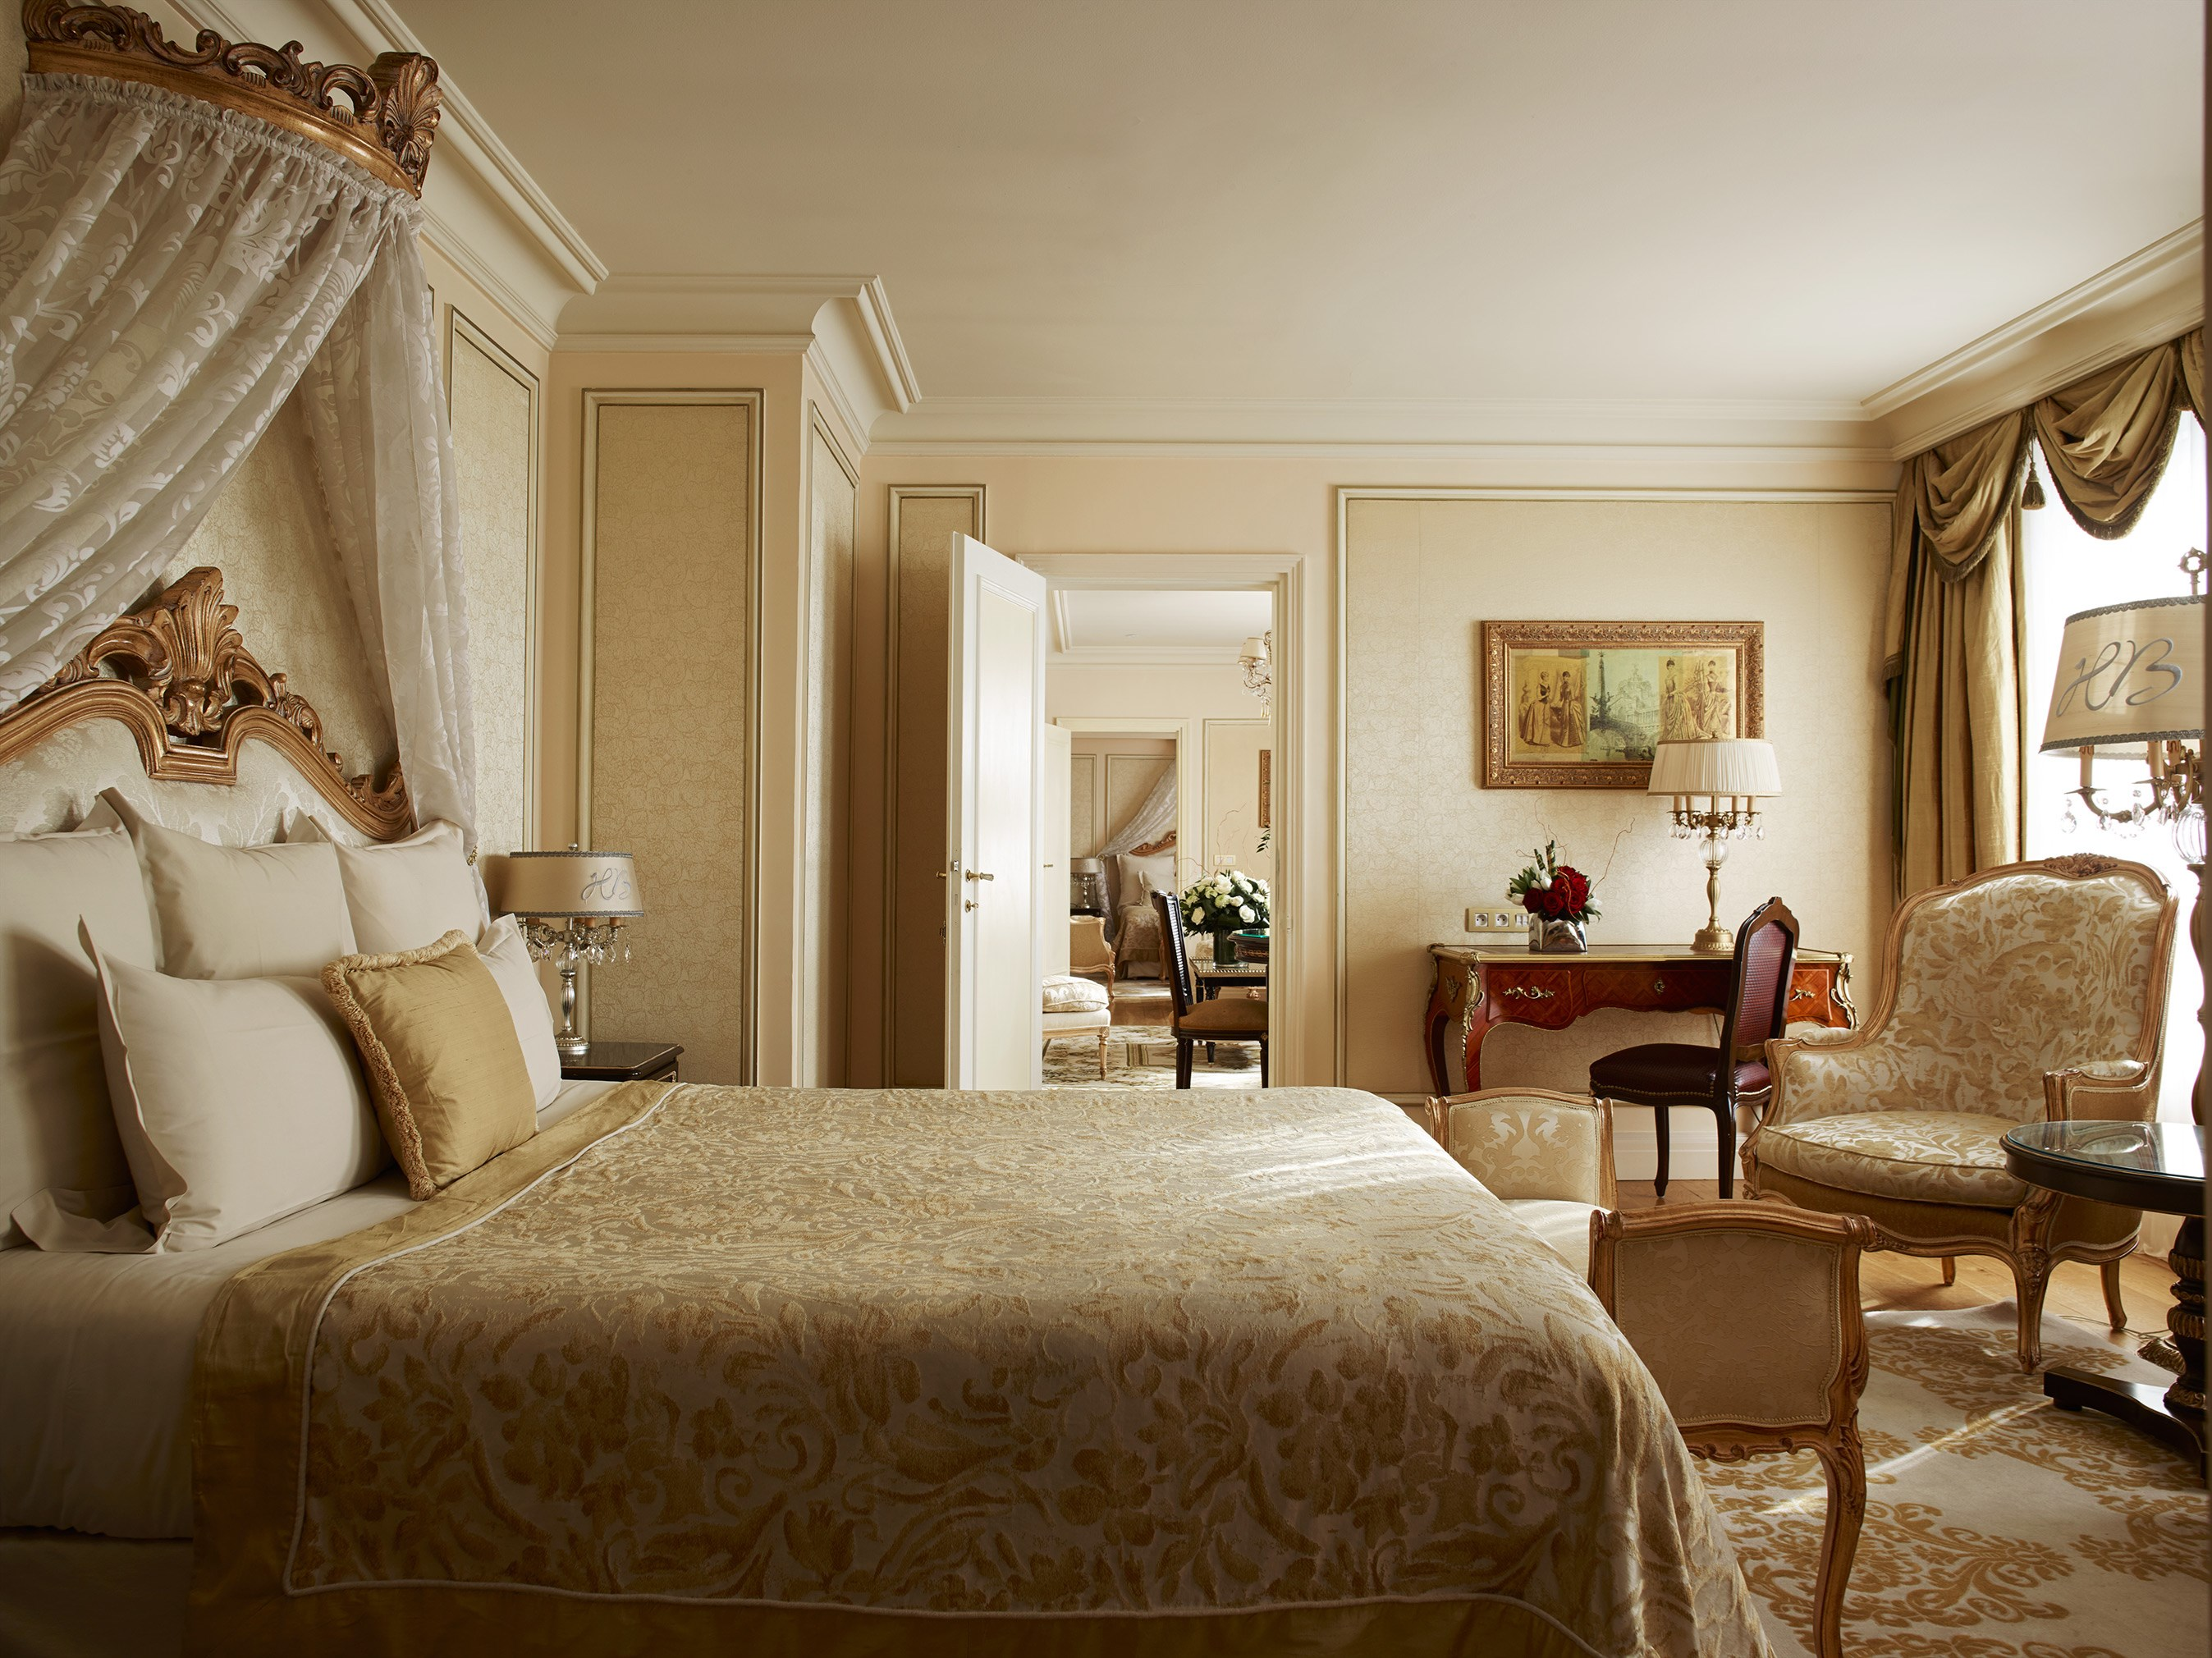 Royal Suite Hotel Balzac